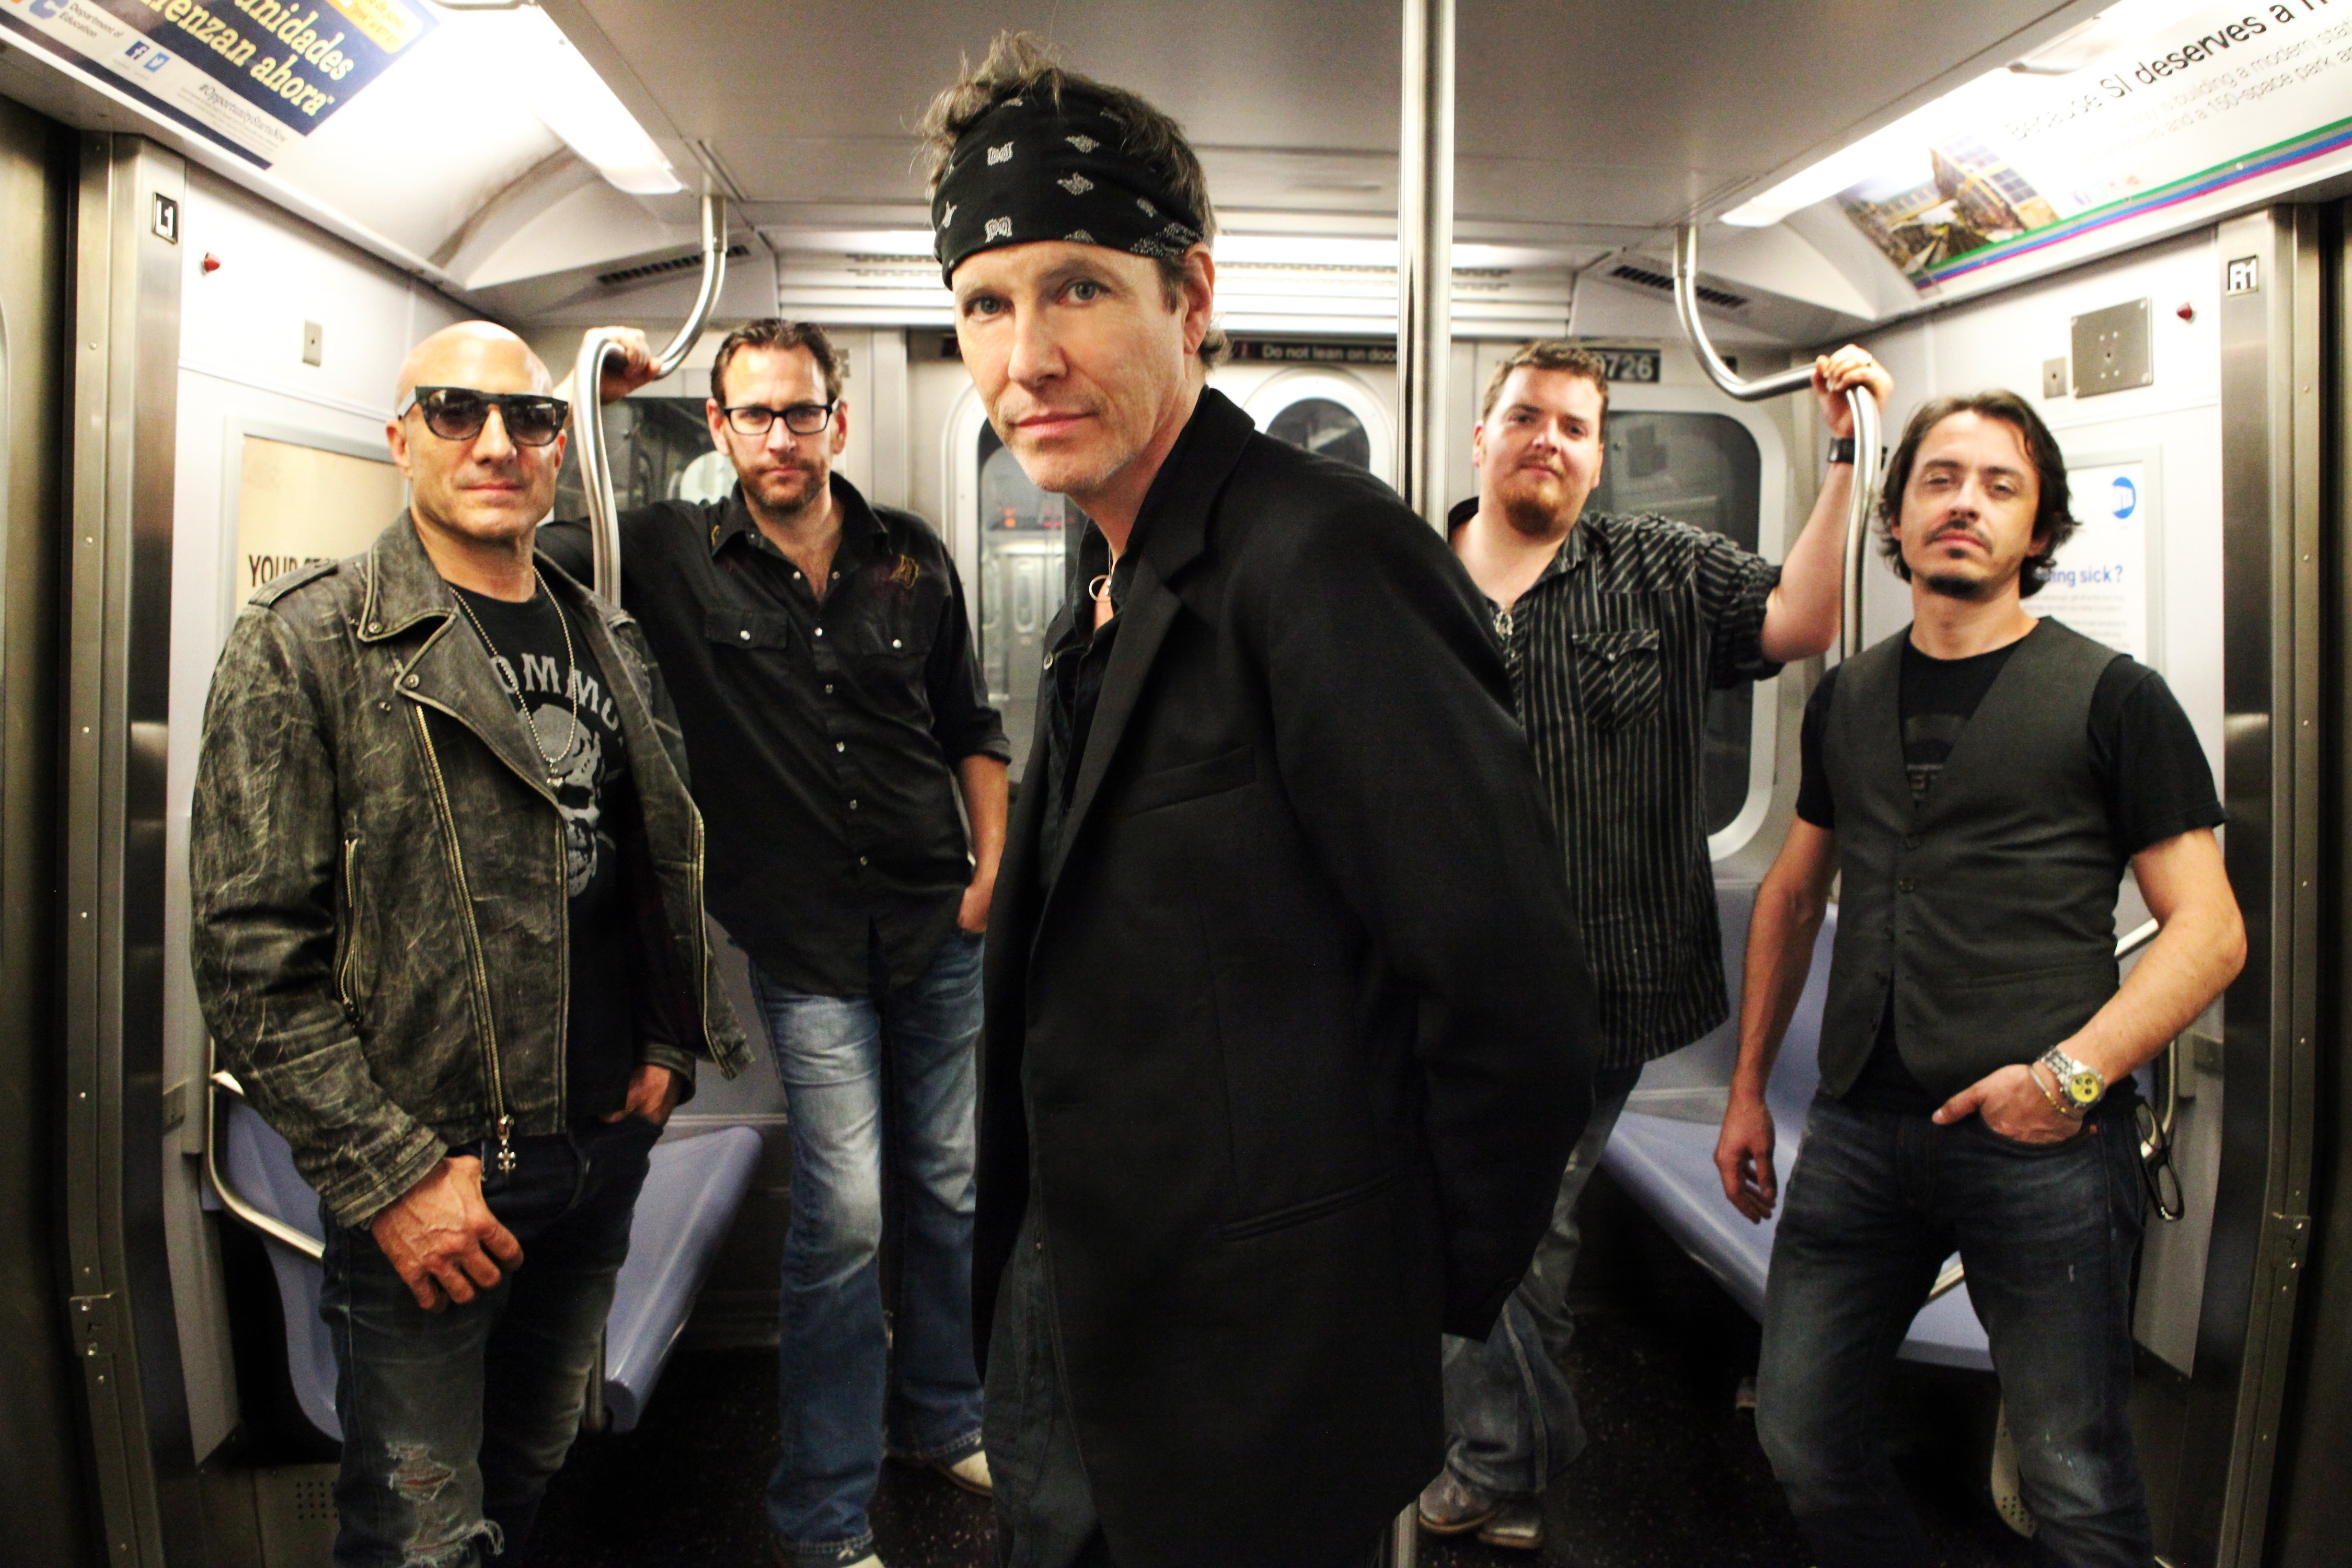 He Can't Stop: Bodeans' Frontman Talks About the Band's 30-Year History